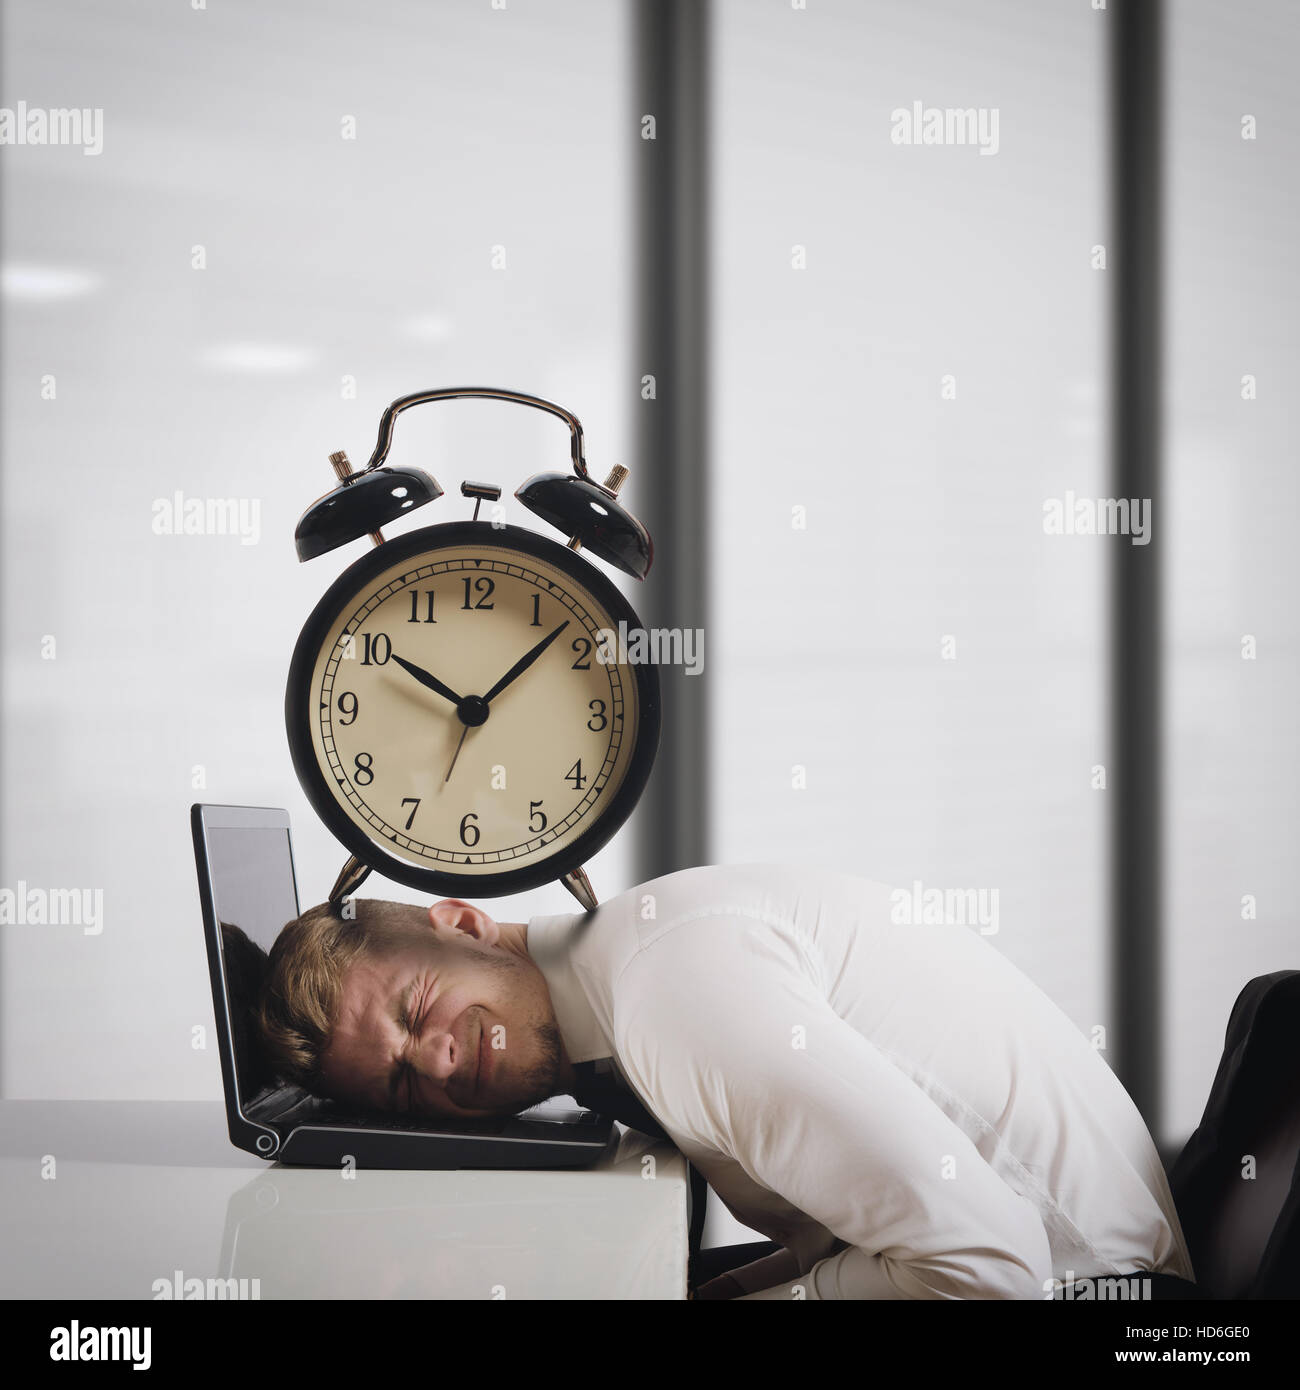 Oppressed by deadlines - Stock Image